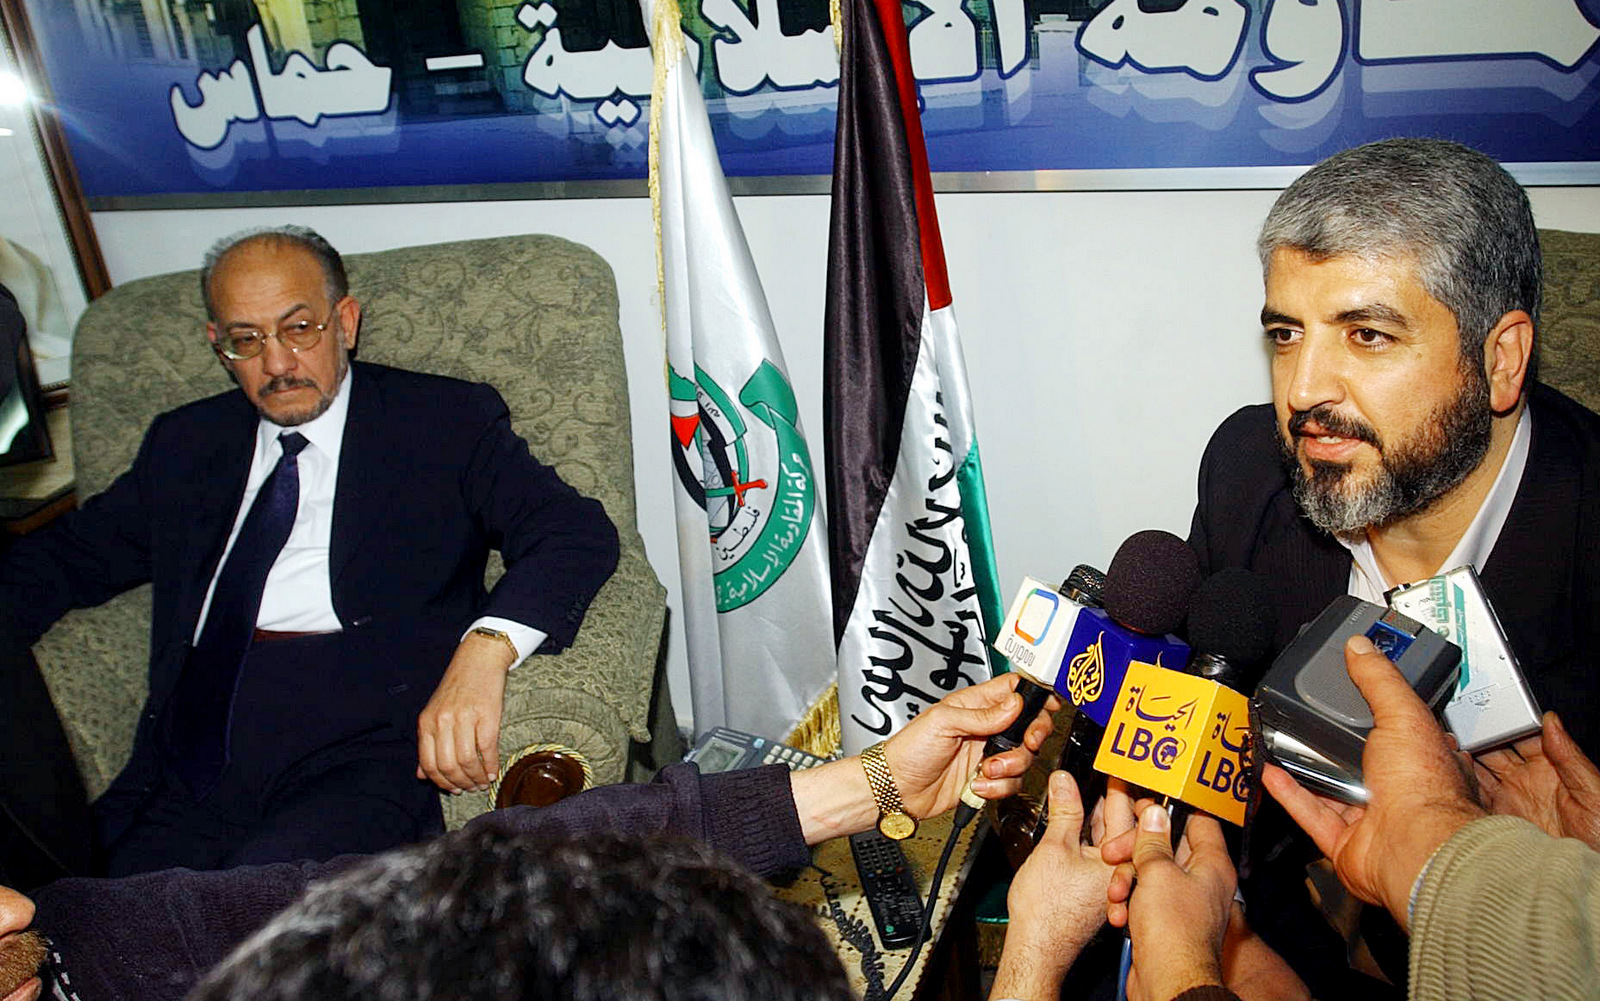 Highly ranking Muslim Brotherhood official Abdul-Majeed Zneibat, left, listens as Hamas leader Khaled Mashaal, right, talks to reporters in Damascus, Tuesday Jan, 31, 2006 . (AP/Bassm Tellawi).